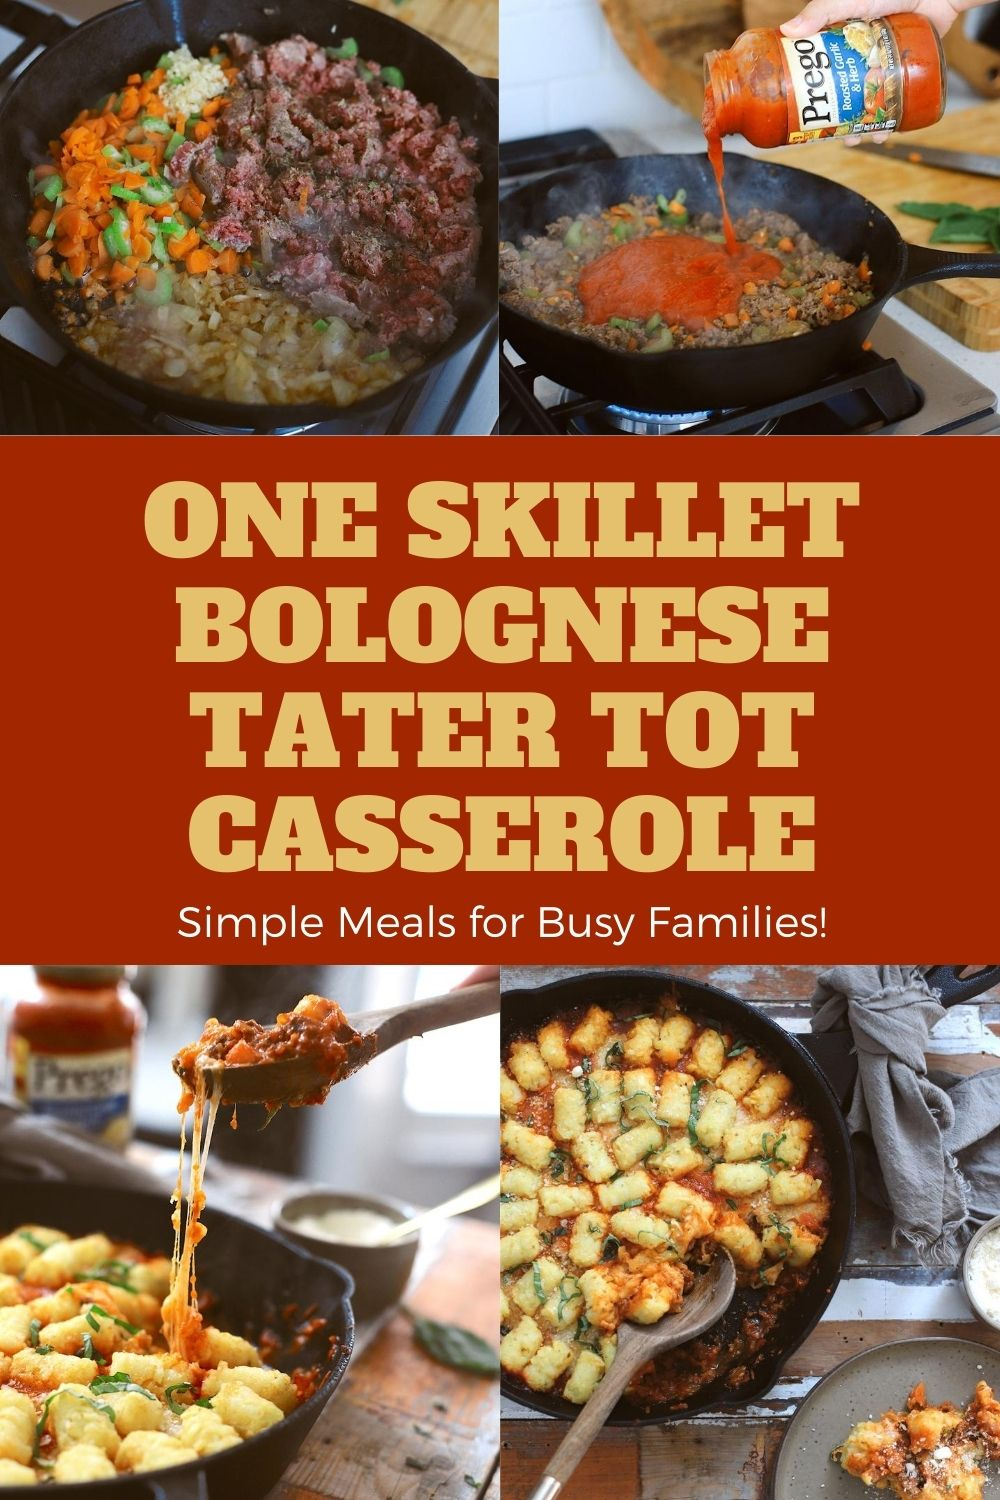 This simple one skillet Bolognese Tater Tot Casserole made with Prego® is a delicious family dinner that you can make perfect any time of year with pantry staples. Think of a cross between a classic bolognese pasta and that quintessential midwest style tater tot casserole. With a cast-iron skillet, this meal boasts slowly caramelized onions in white wine, the secret vegetables of a classic bolognese, and ground beef…all cooked together in one skillet, topped with plenty of cheese, tater tots, and herbs. Simply cook the skillet in the oven to create the perfect crispy tots and cheesy, one skillet dinner! | Tater Tot Casserole by popular Florida lifestyle blog, Fresh Mommy Blog: Pinterest image of a one skillet bolognese tater tot casserole in a skillet.